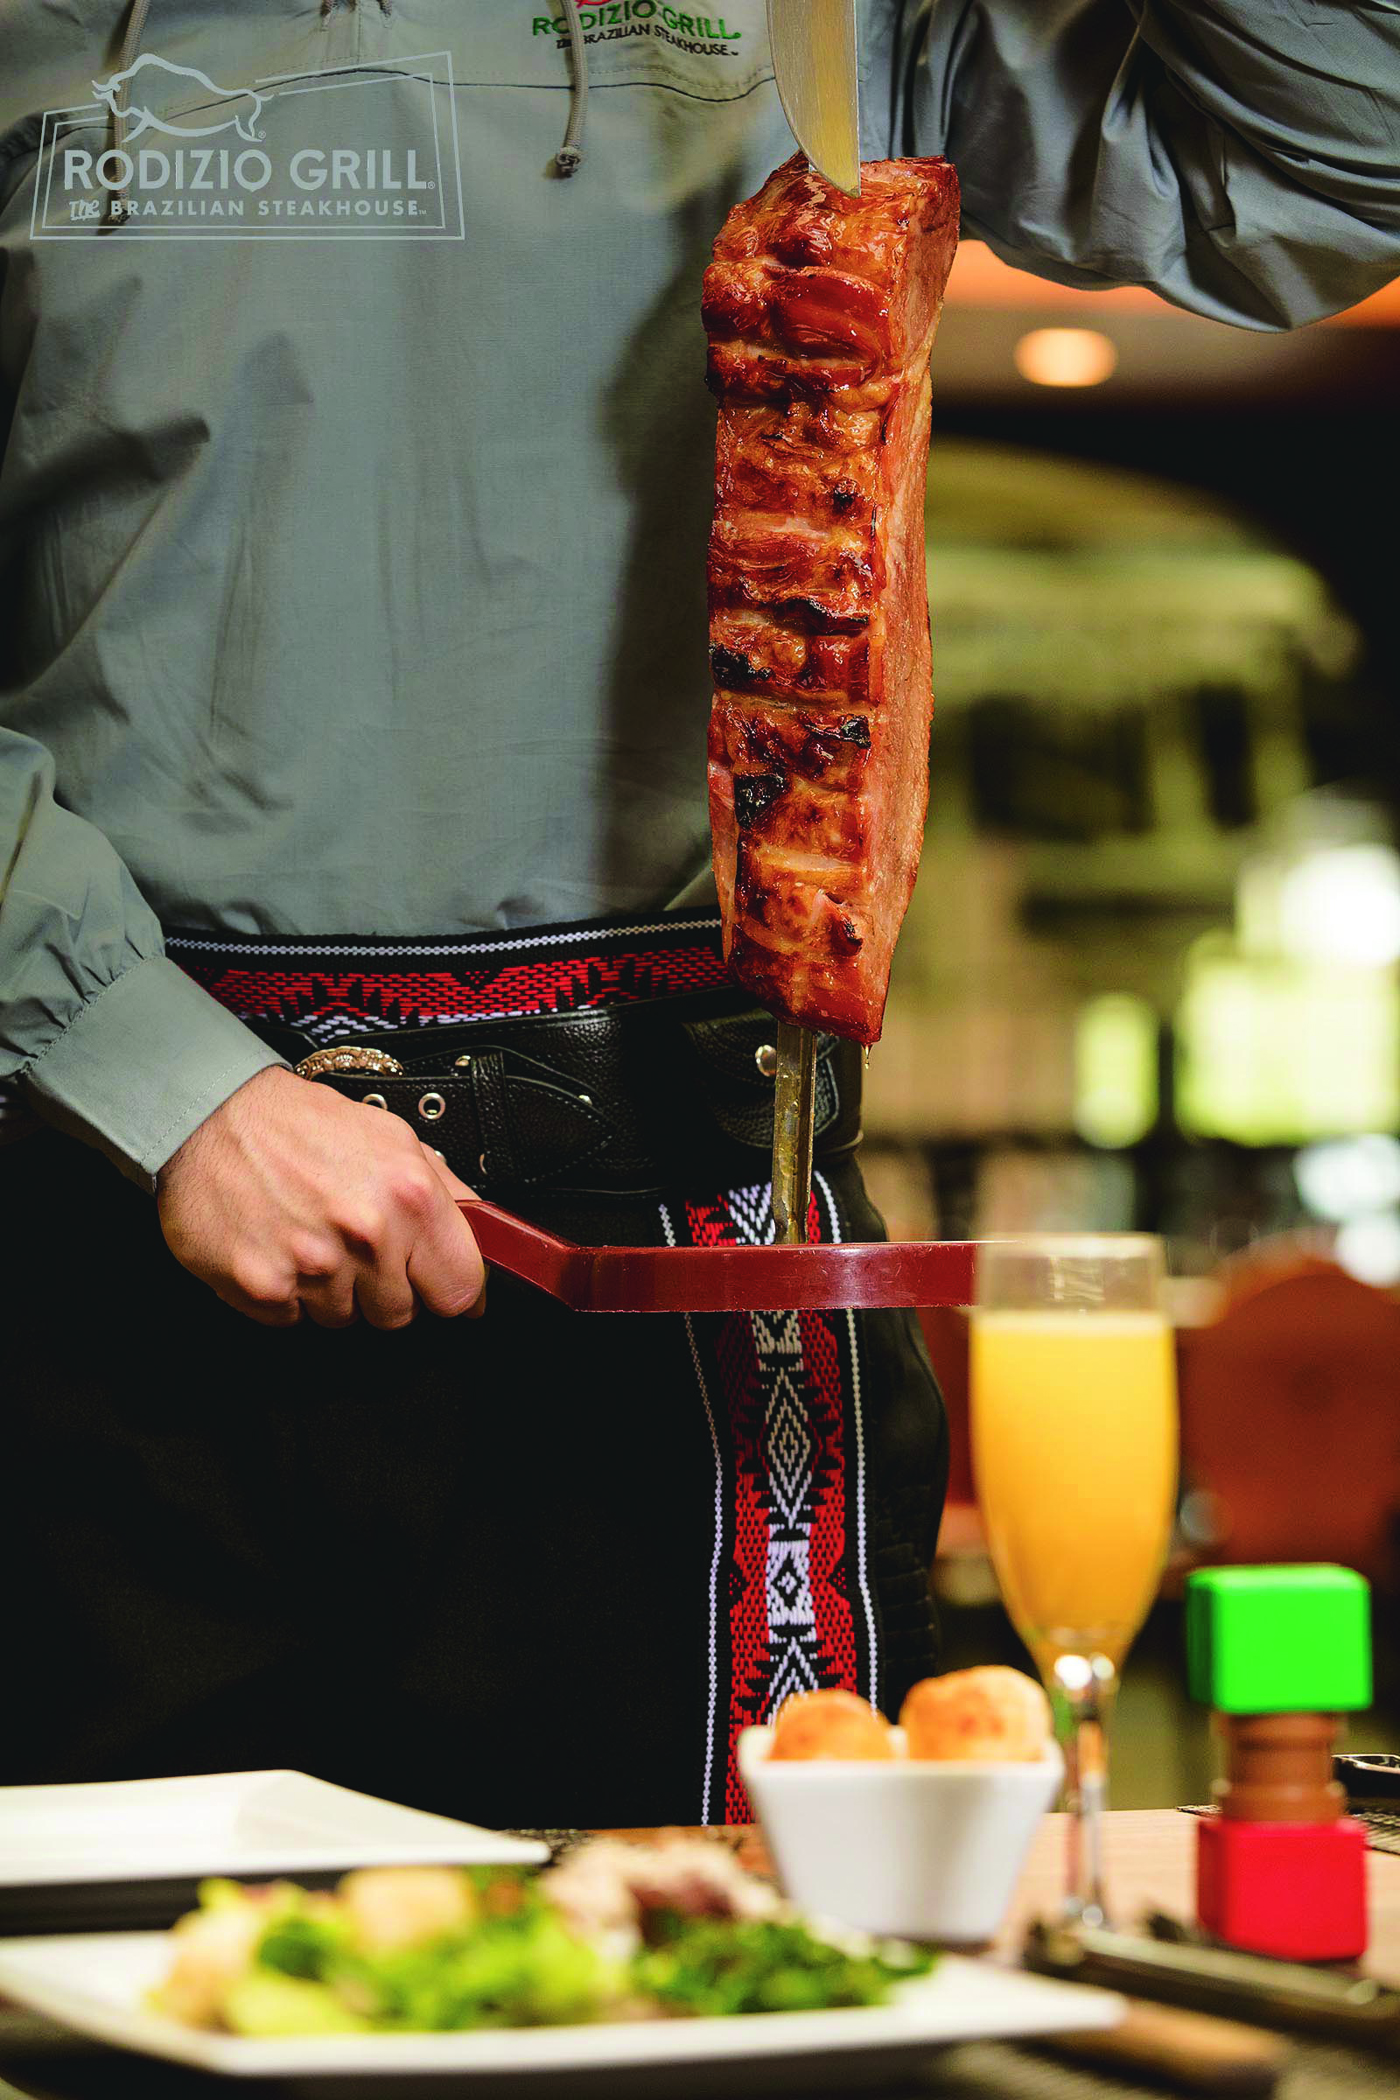 image regarding Rodizio Grill Coupons Printable called Rodizio Grill - $25 For $50 Importance Of Wonderful -